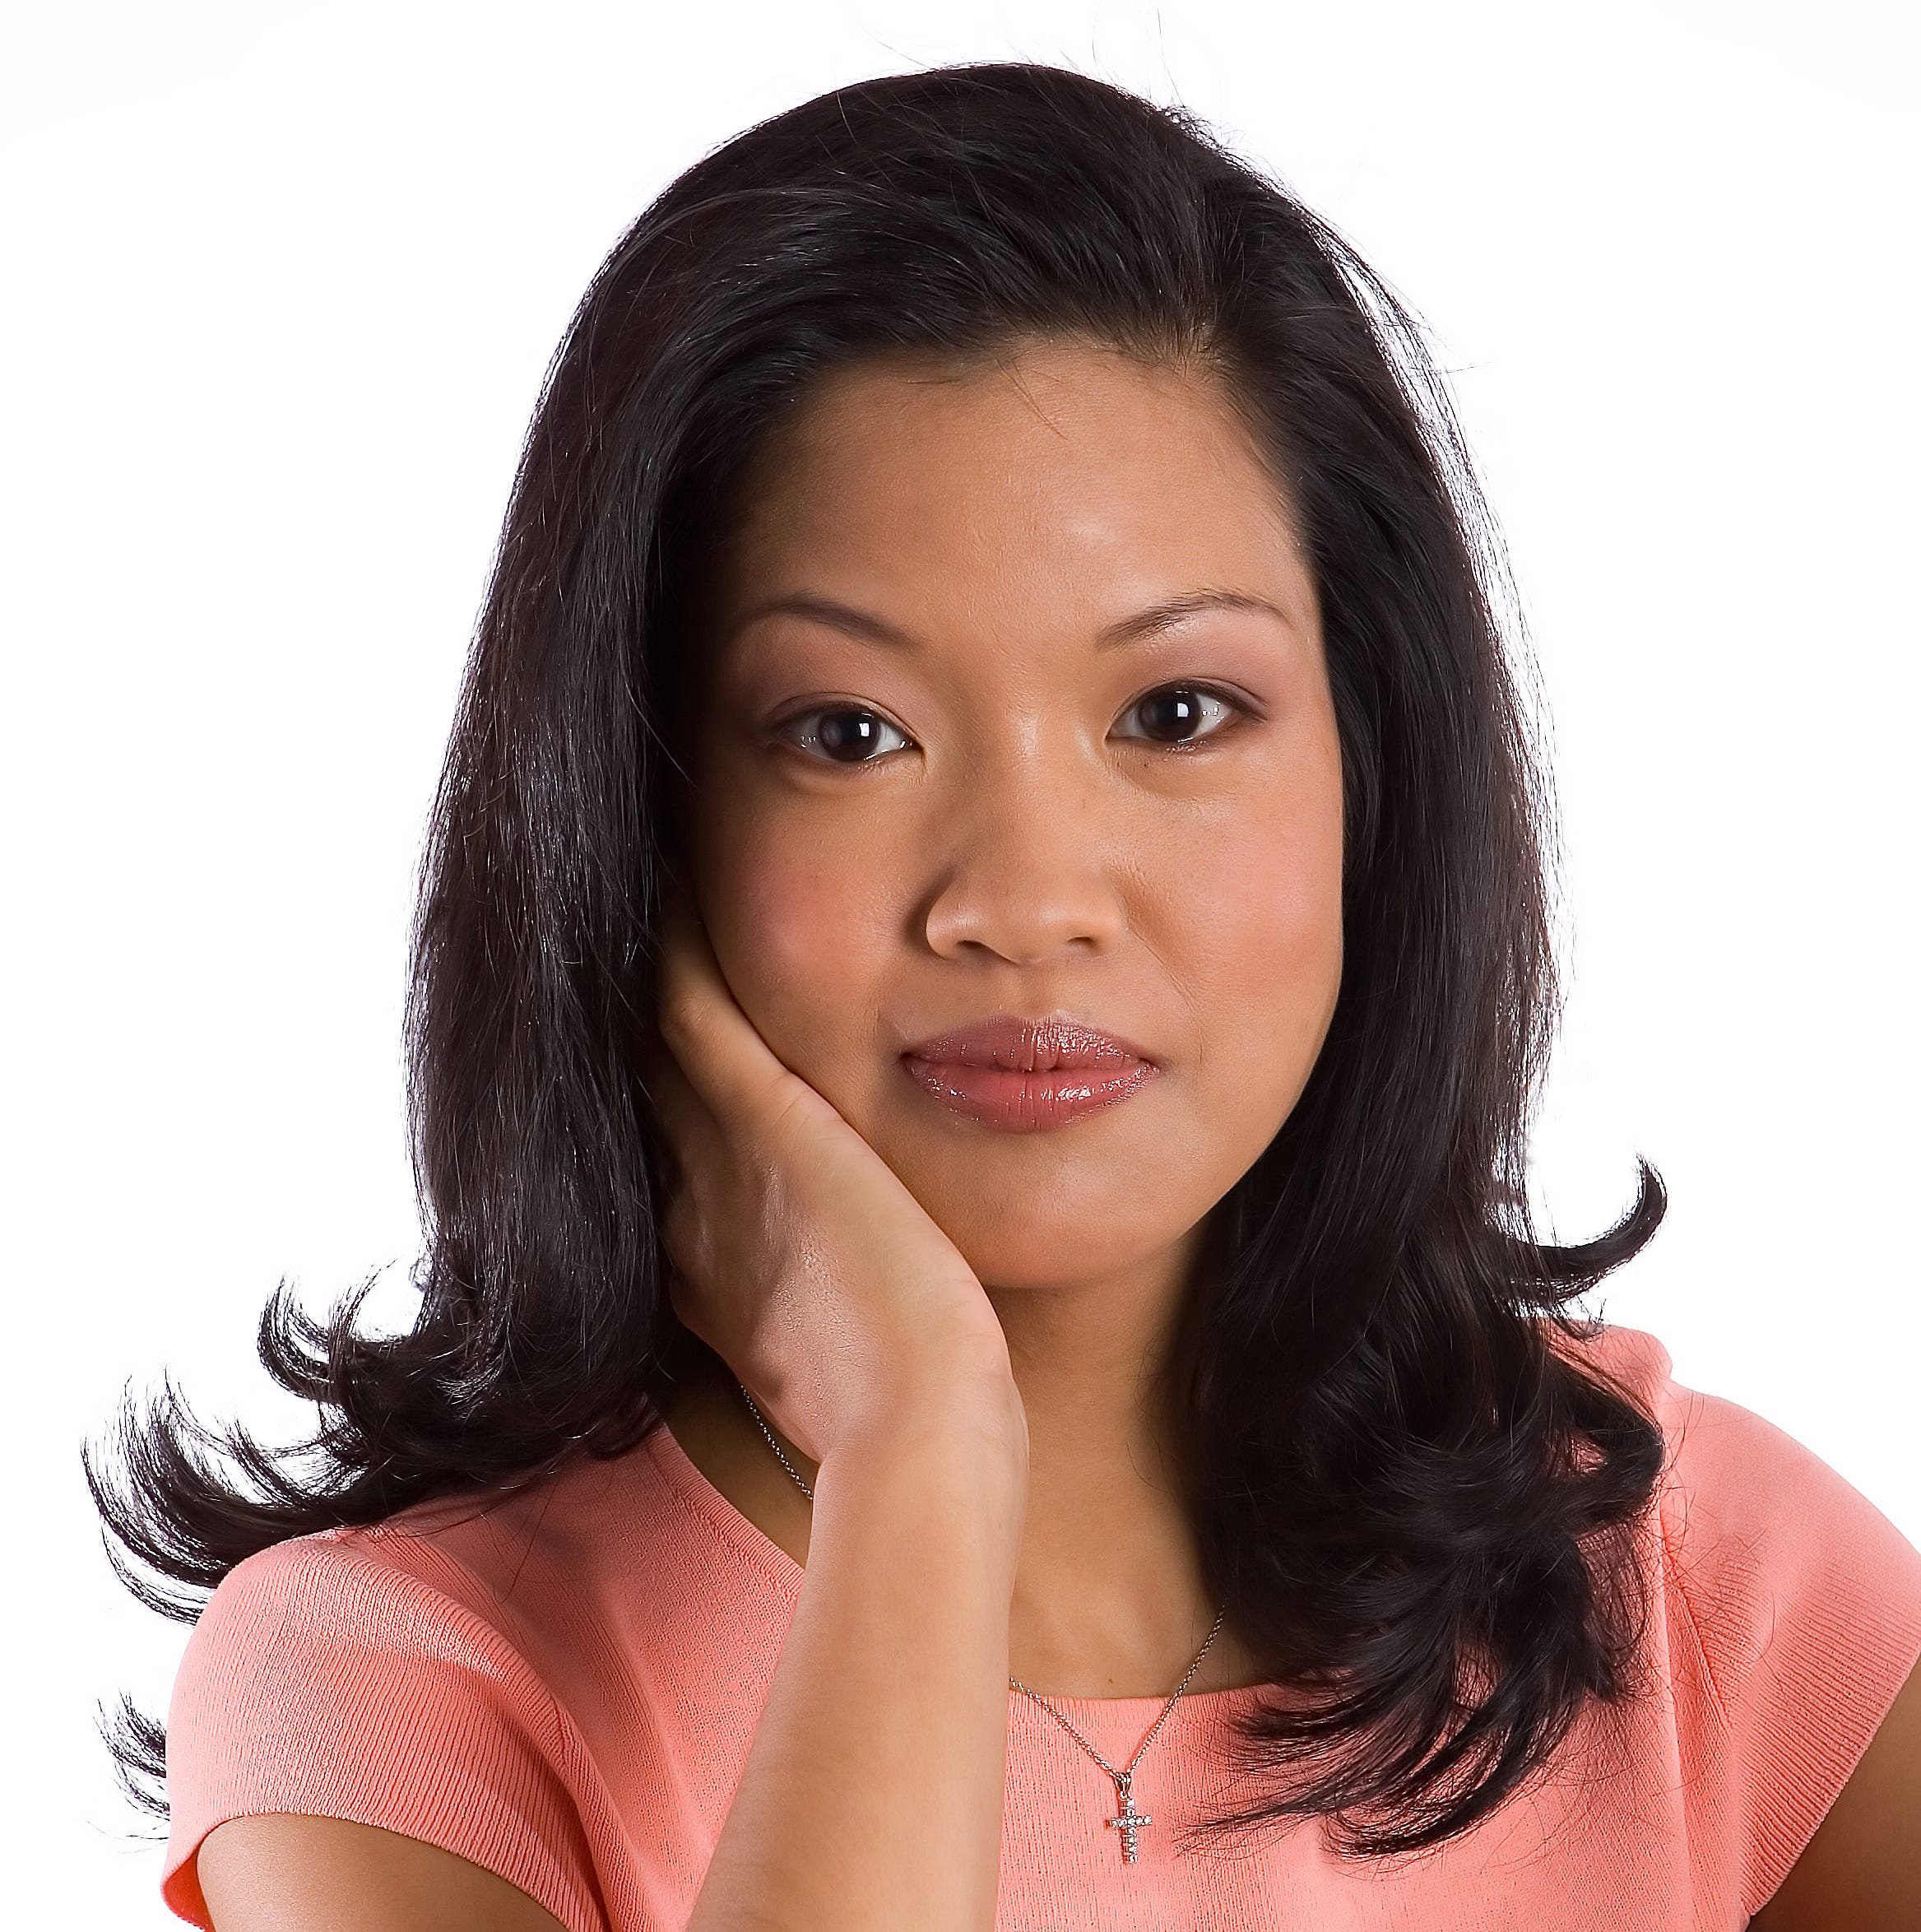 Mocking 'the ghost of John McCain', Michelle Malkin? That's low